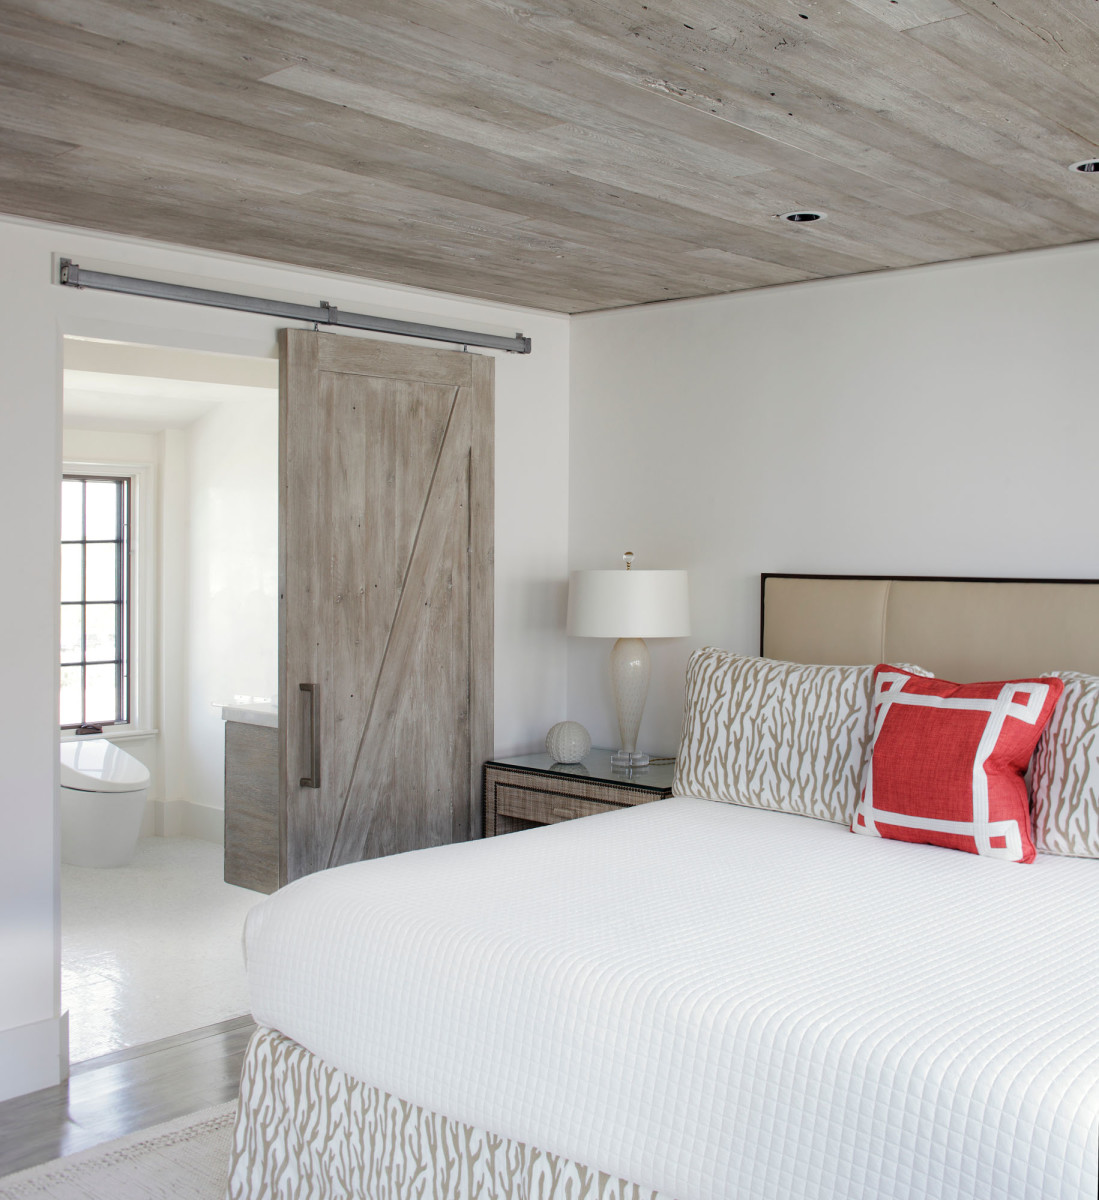 barn door bedroom, Jeffery Dungan Architects